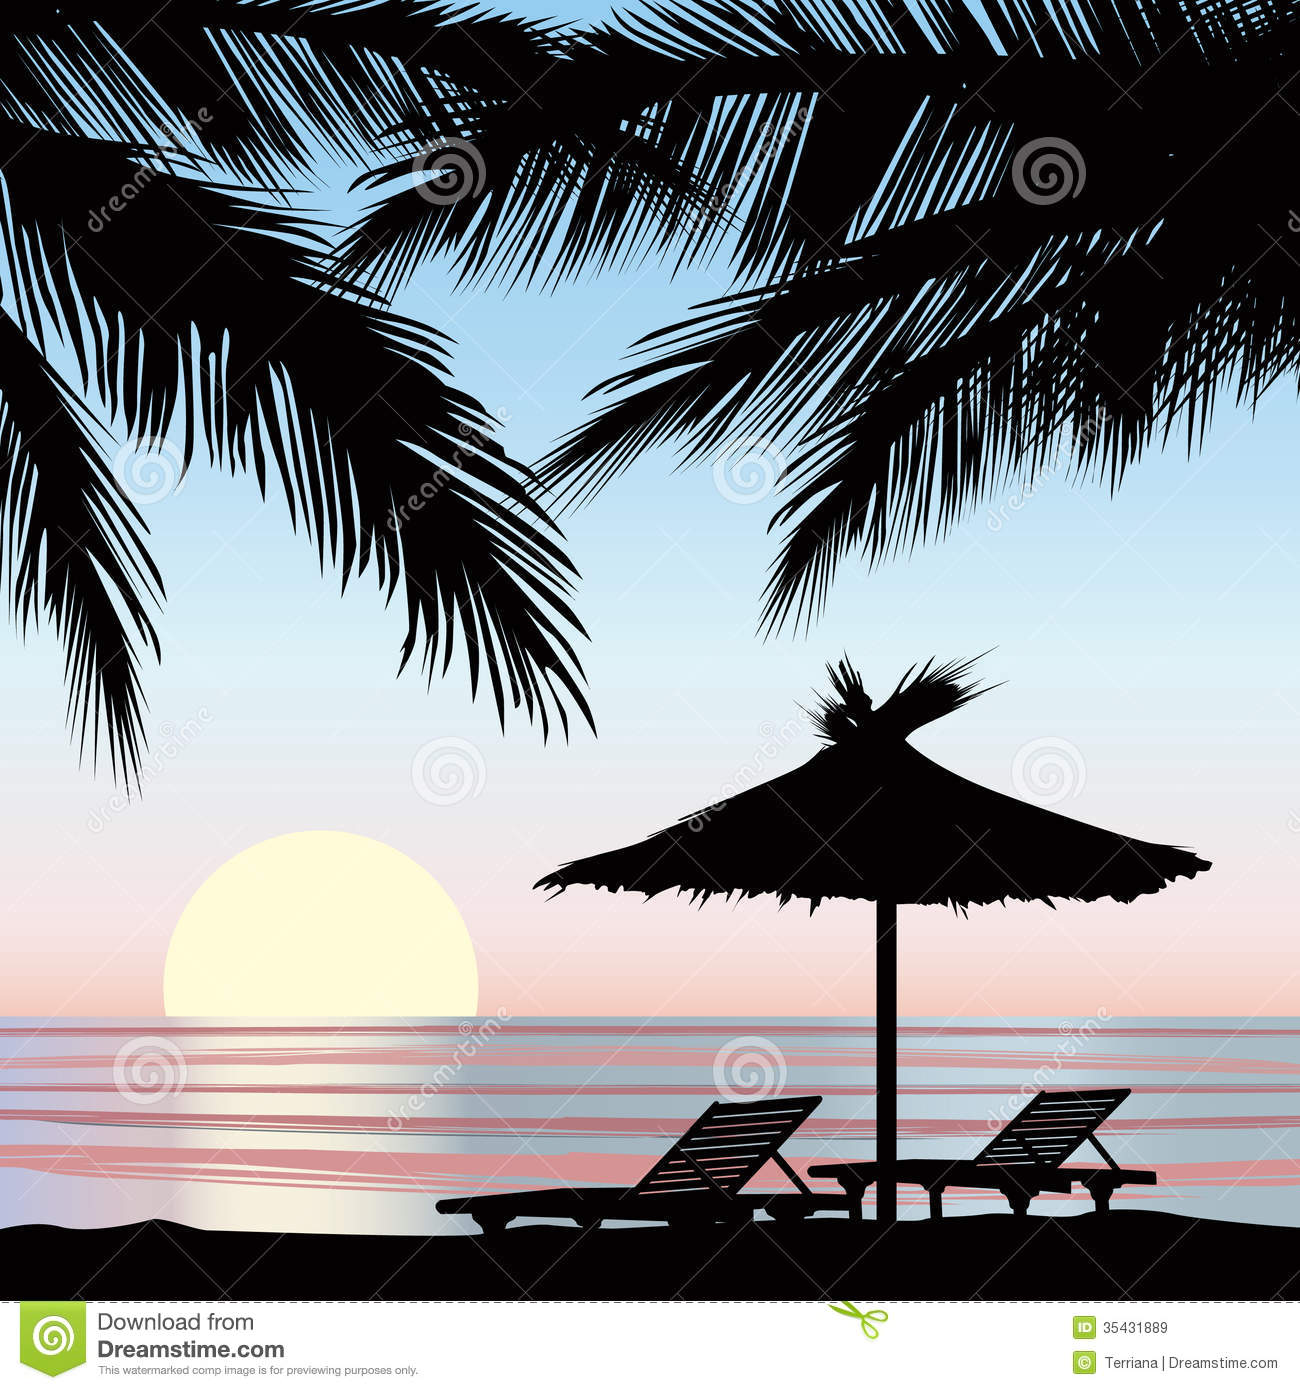 sunrise view at resort seaside holiday background stock. Black Bedroom Furniture Sets. Home Design Ideas